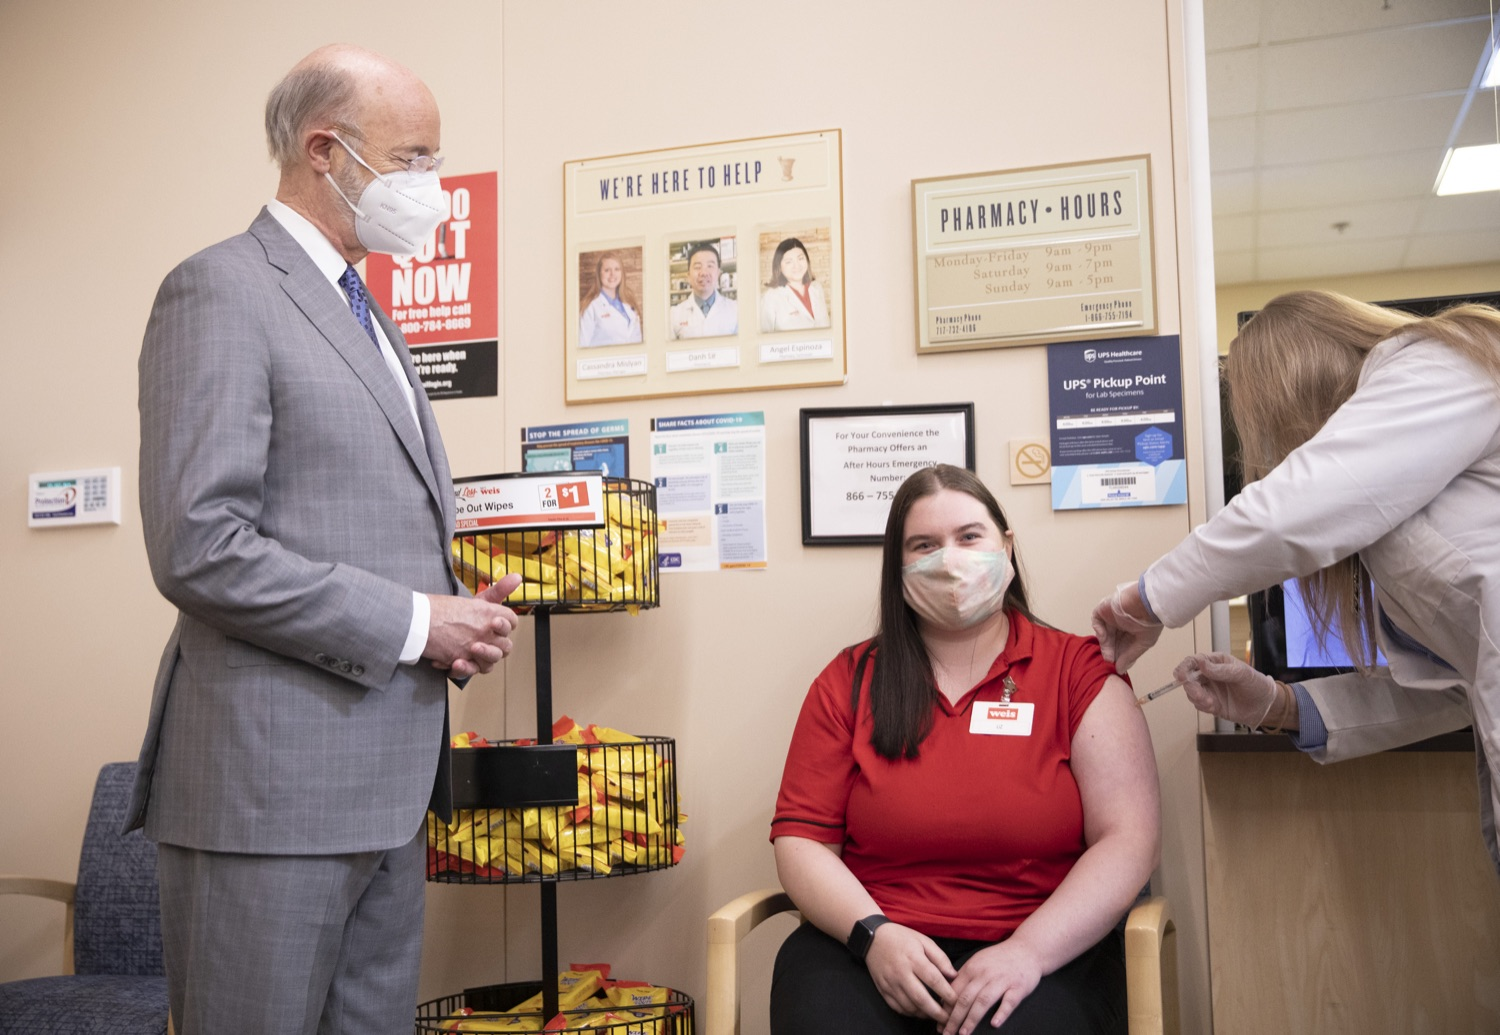 """<a href=""""https://filesource.wostreaming.net/commonwealthofpa/photo/18654_gov_vaccineeligibility_dz_004.jpg"""" target=""""_blank"""">⇣Download Photo<br></a>Pennsylvania Governor Tom Wolf tours of Weis Markets and watches a Weis employee receive a vaccine.  Gov. Tom Wolf visited Weis Markets in Enola, Cumberland County, to recognize the heroic efforts of Pennsylvania's grocery store workers, who are now eligible for the COVID-19 vaccine.  The governor expressed his gratitude to Pennsylvania's 180,000 grocery store workers, who suddenly became frontline workers as the state took critical steps to mitigate the spread of COVID-19. Grocery stores were deemed life-sustaining businesses, and these employees put their lives at risk to ensure their stores remained open to the public. APRIL 06, 2021 - ENOLA, PA.."""